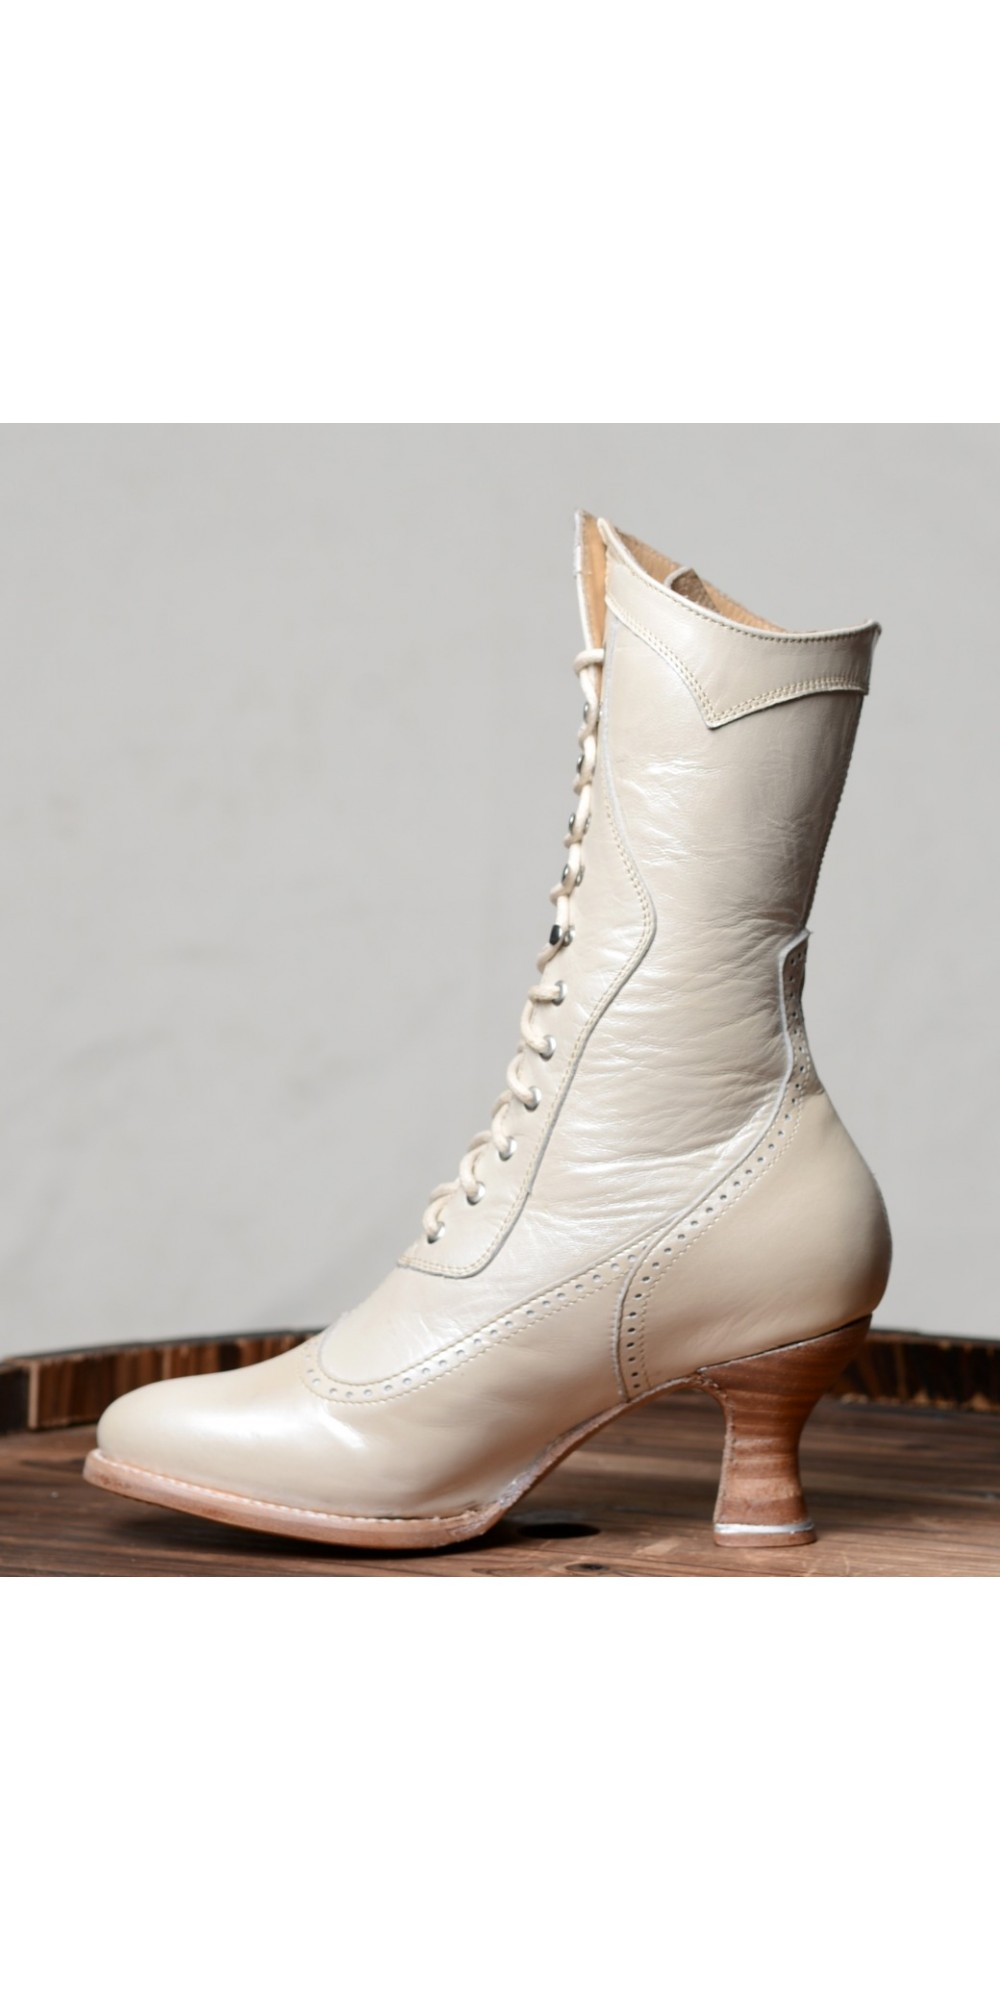 Jasmine Modern Victorian Lace Up Leather Boots In Pearl By. Black Wedding Dresses For Bridesmaids. Cheap Wedding Dresses Toronto. Valentino Celebrity Wedding Dresses. Silver Or Gold Wedding Dresses. Wedding Dresses Sirena Style. Used Vintage Wedding Dresses For Sale. Winter Wedding Mother Dresses. Wedding Dresses Red And Black